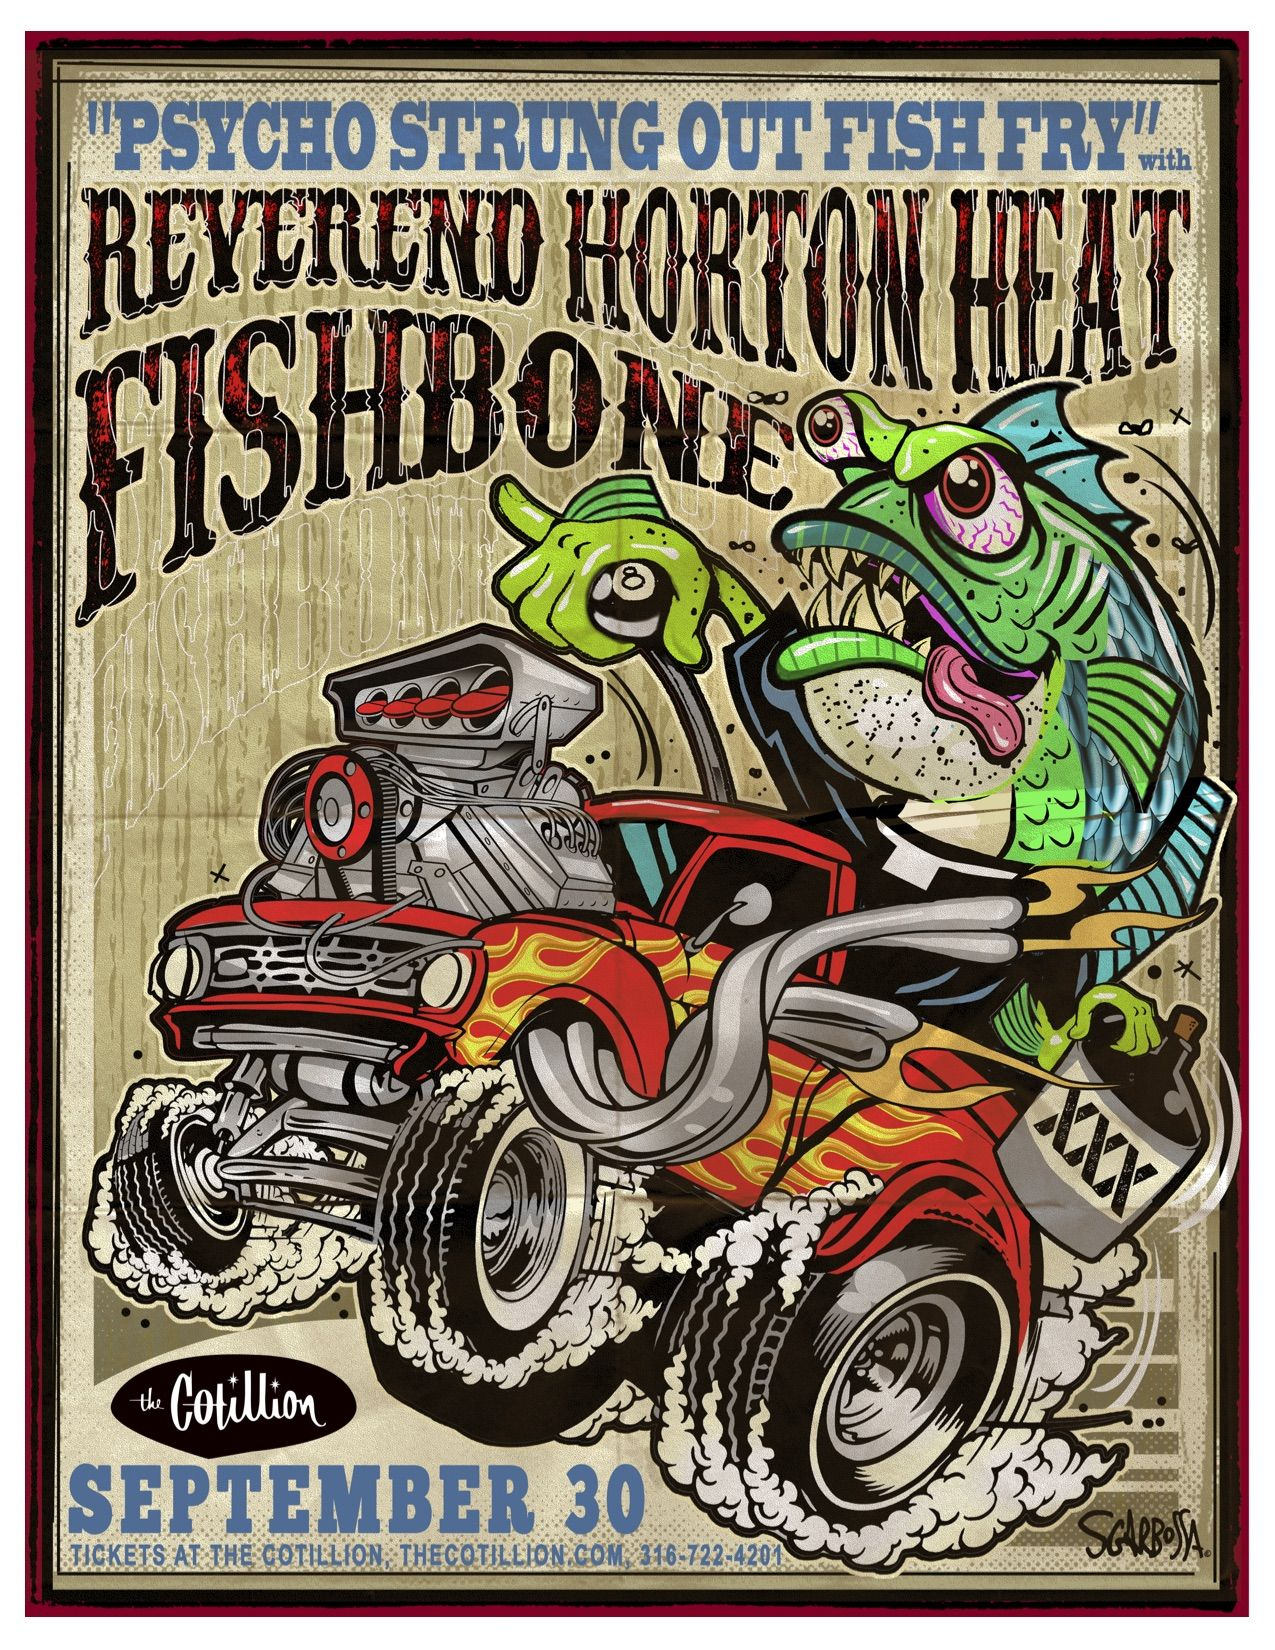 "From: Dallas, Texas. The Reverend Horton Heat is the name of a Dallas, Texas-based psychobilly trio. The group is led by James C. Heath, AKA Reverend Horton Heat (2). Heath is a singer, songwriter and guitarist. The group originally formed in 1985, playing its first gigs in Dallas's Deep Ellum neighborhood. Its current members are Jim ""Reverend Horton"" Heath on guitar and lead vocals, Jimbo Wallace on the upright bass, and Scott Churilla on drums."